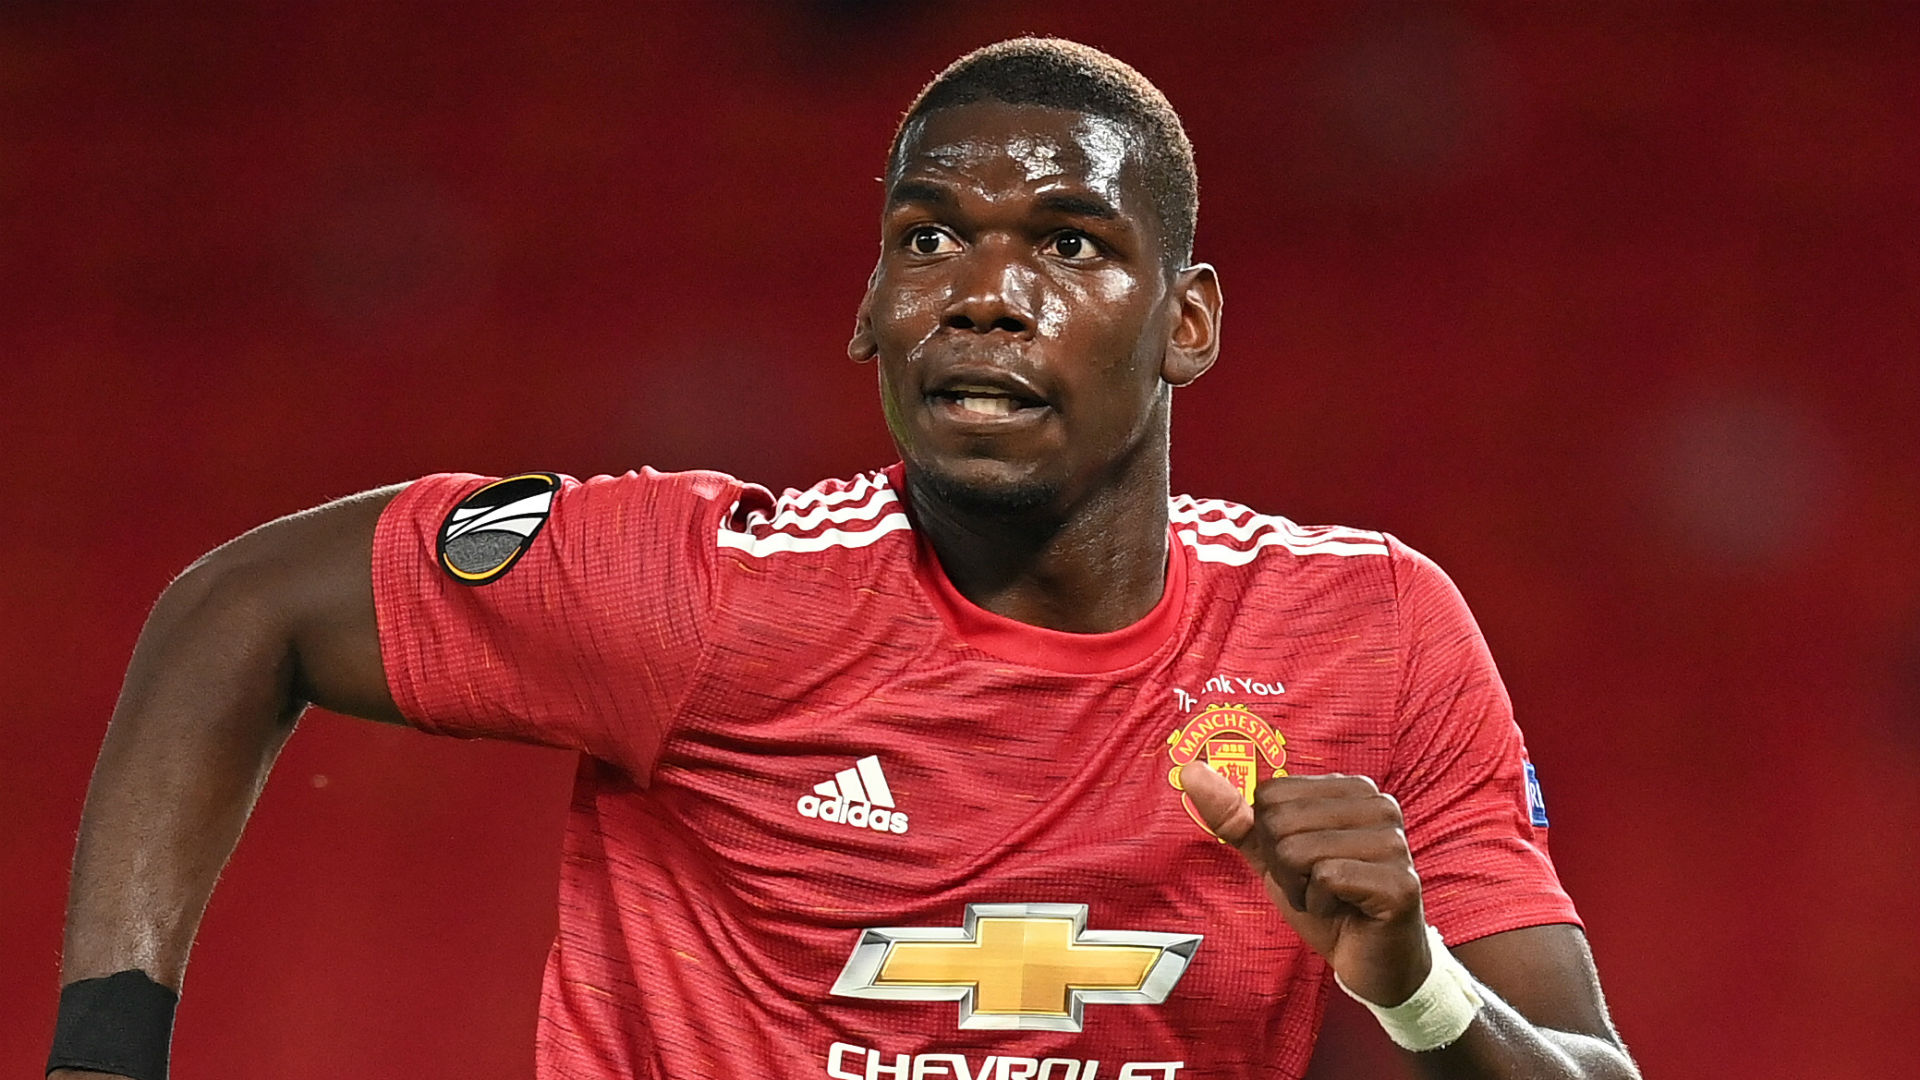 Manchester United Will Keep Pogba Amid Pursuit Of Big Signings, Agent Says